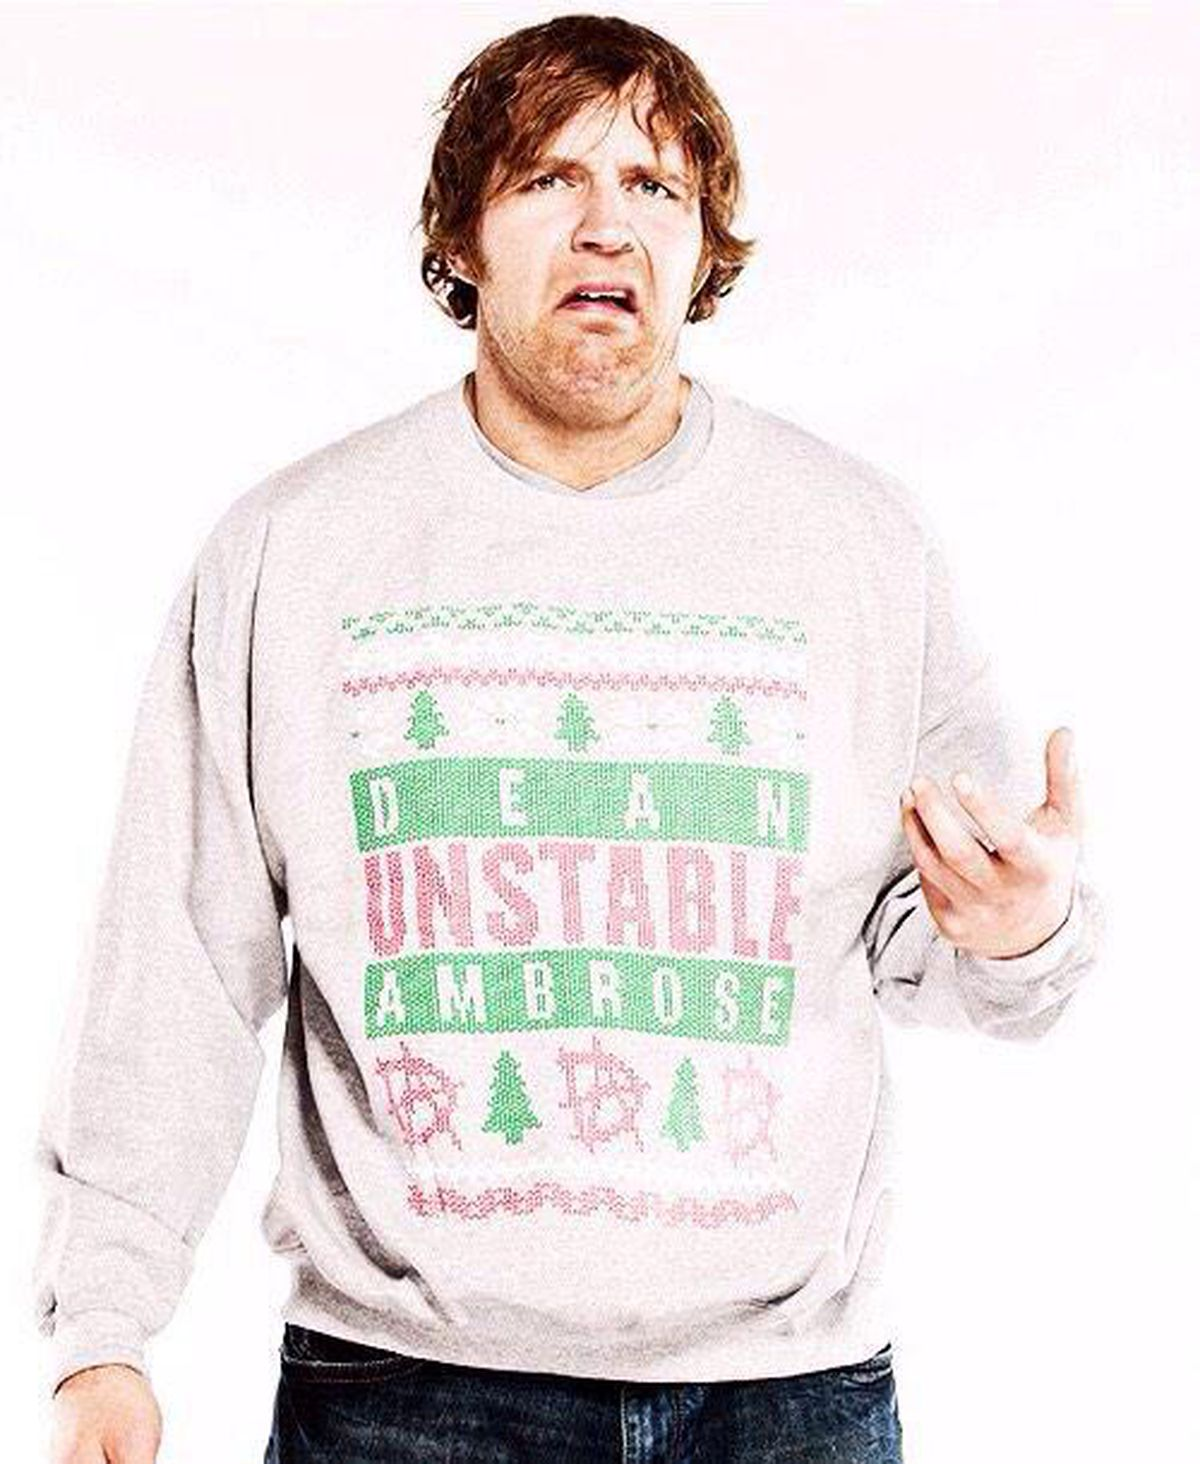 Pic: Dean Ambrose in his ugly Christmas sweater - Cageside Seats